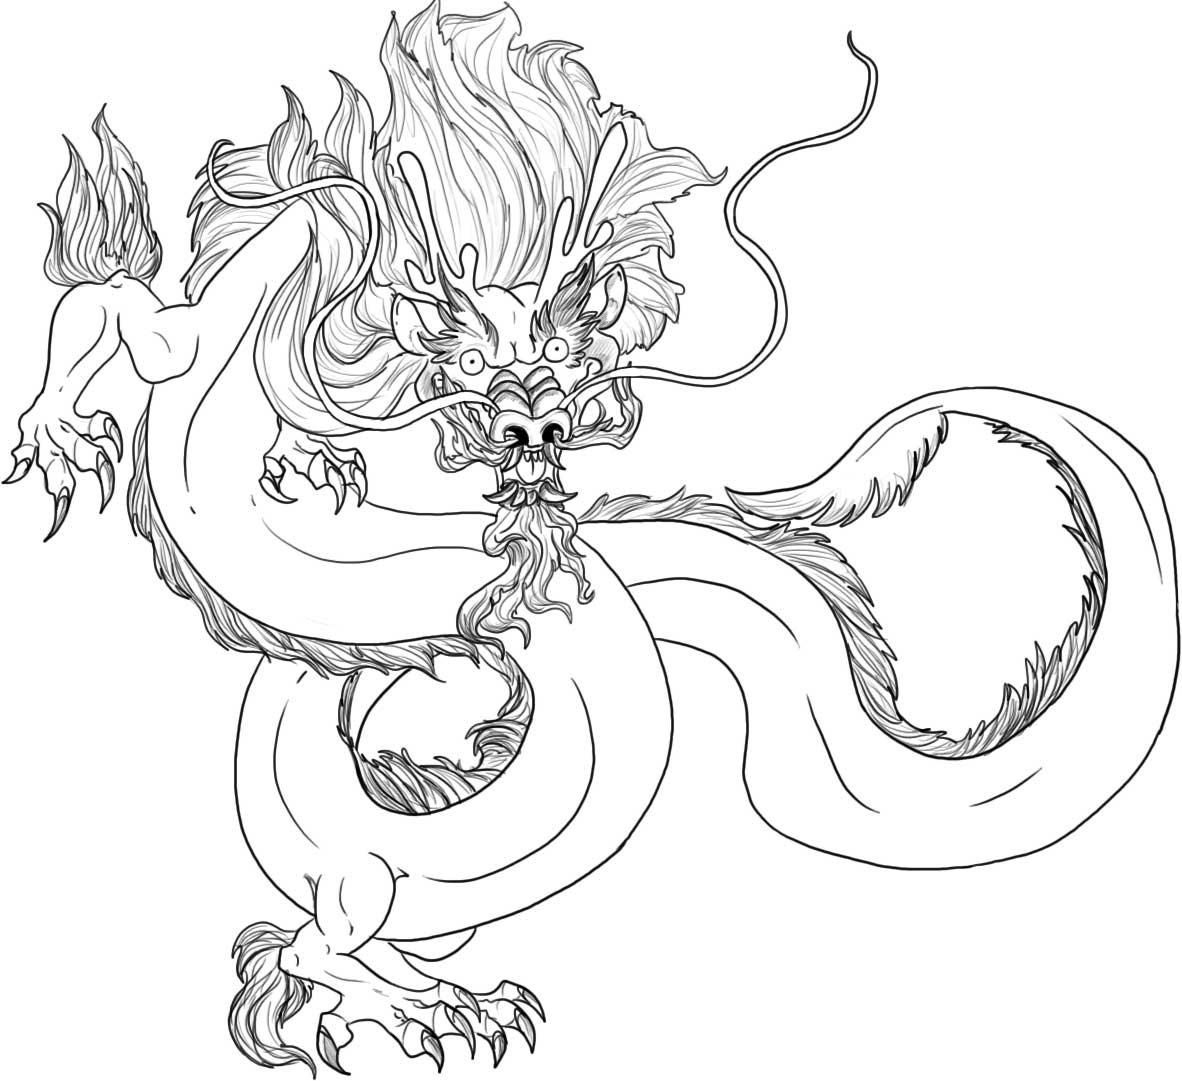 Free Printable Chinese Dragon Coloring Pages For Kids | Chinese - Free Printable Chinese Dragon Coloring Pages